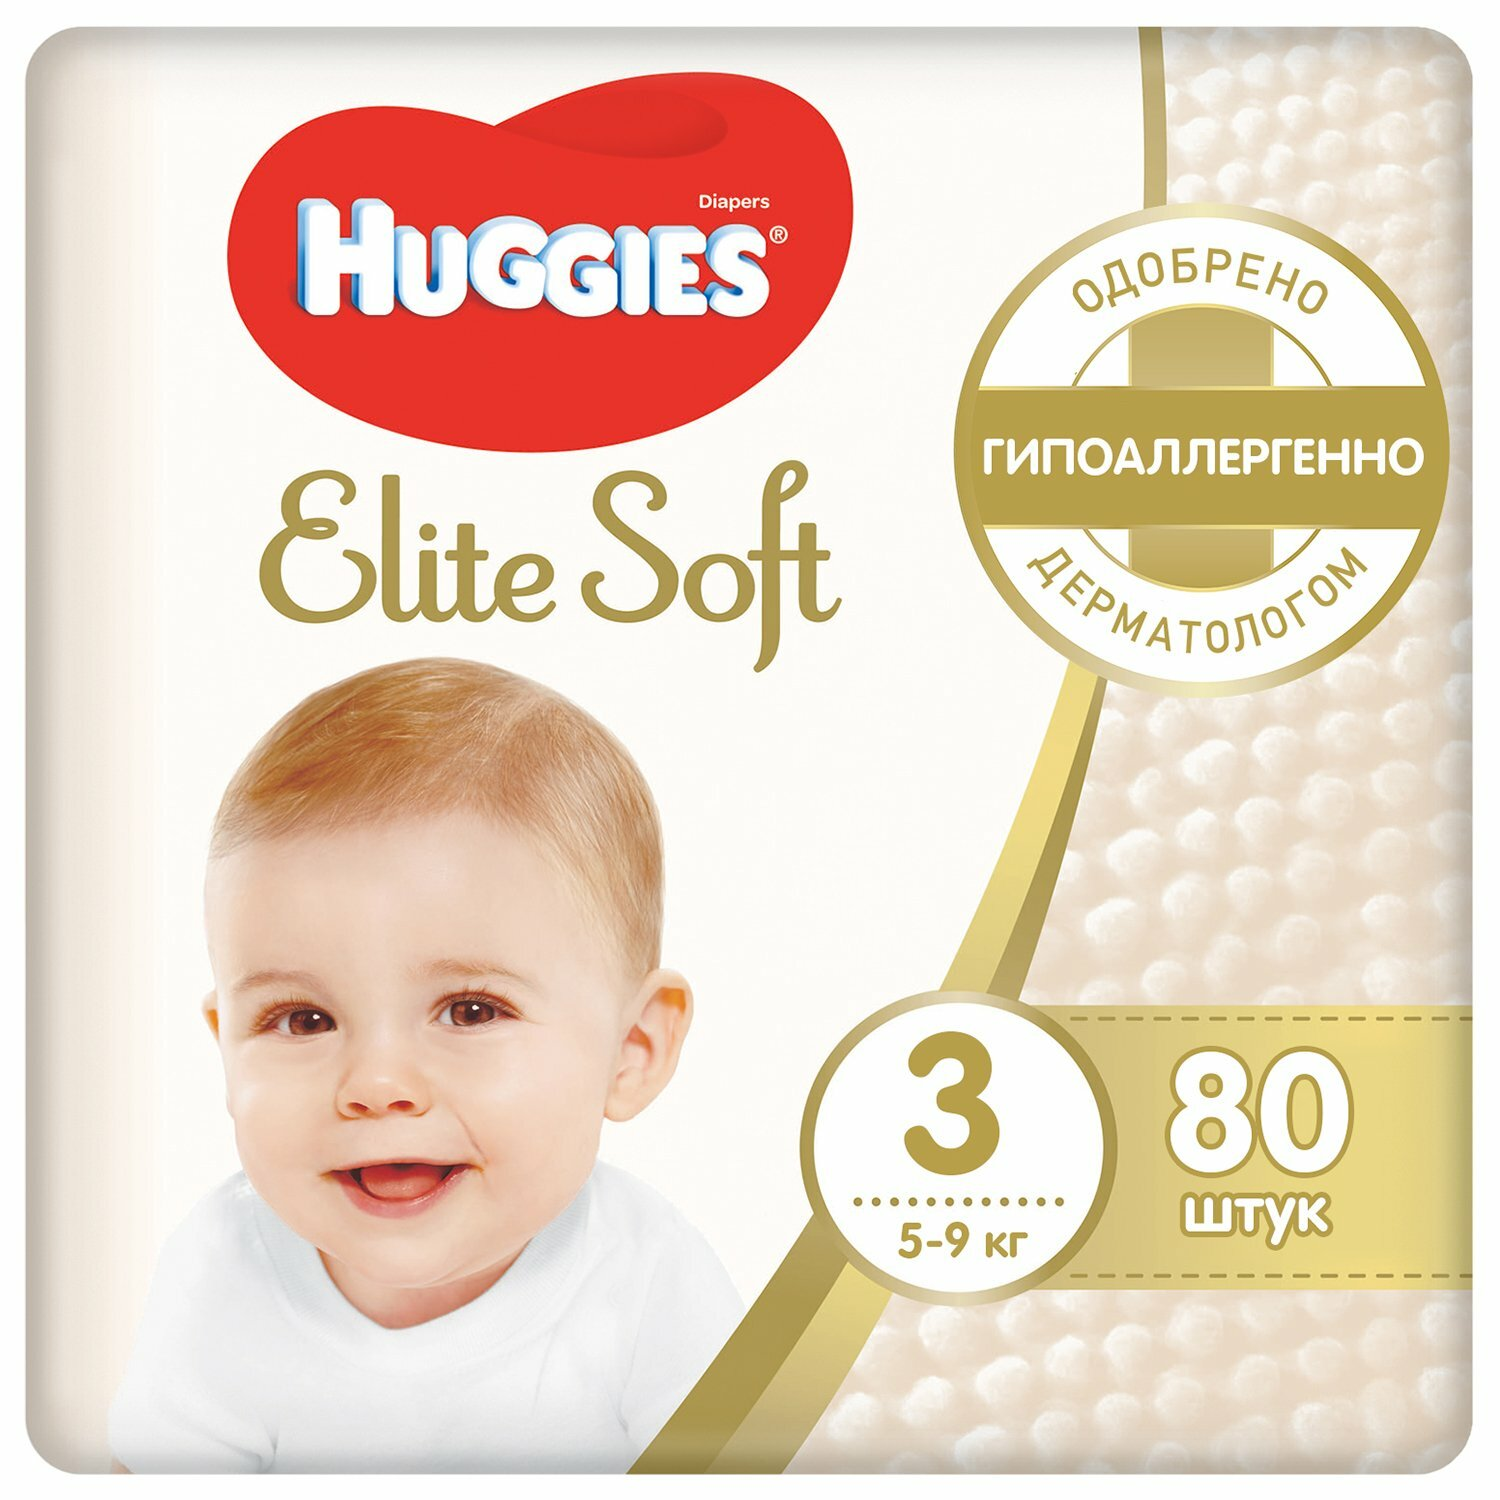 Подгузники Huggies Elite Soft Mega, р. 3, 5-9 кг, 80 шт